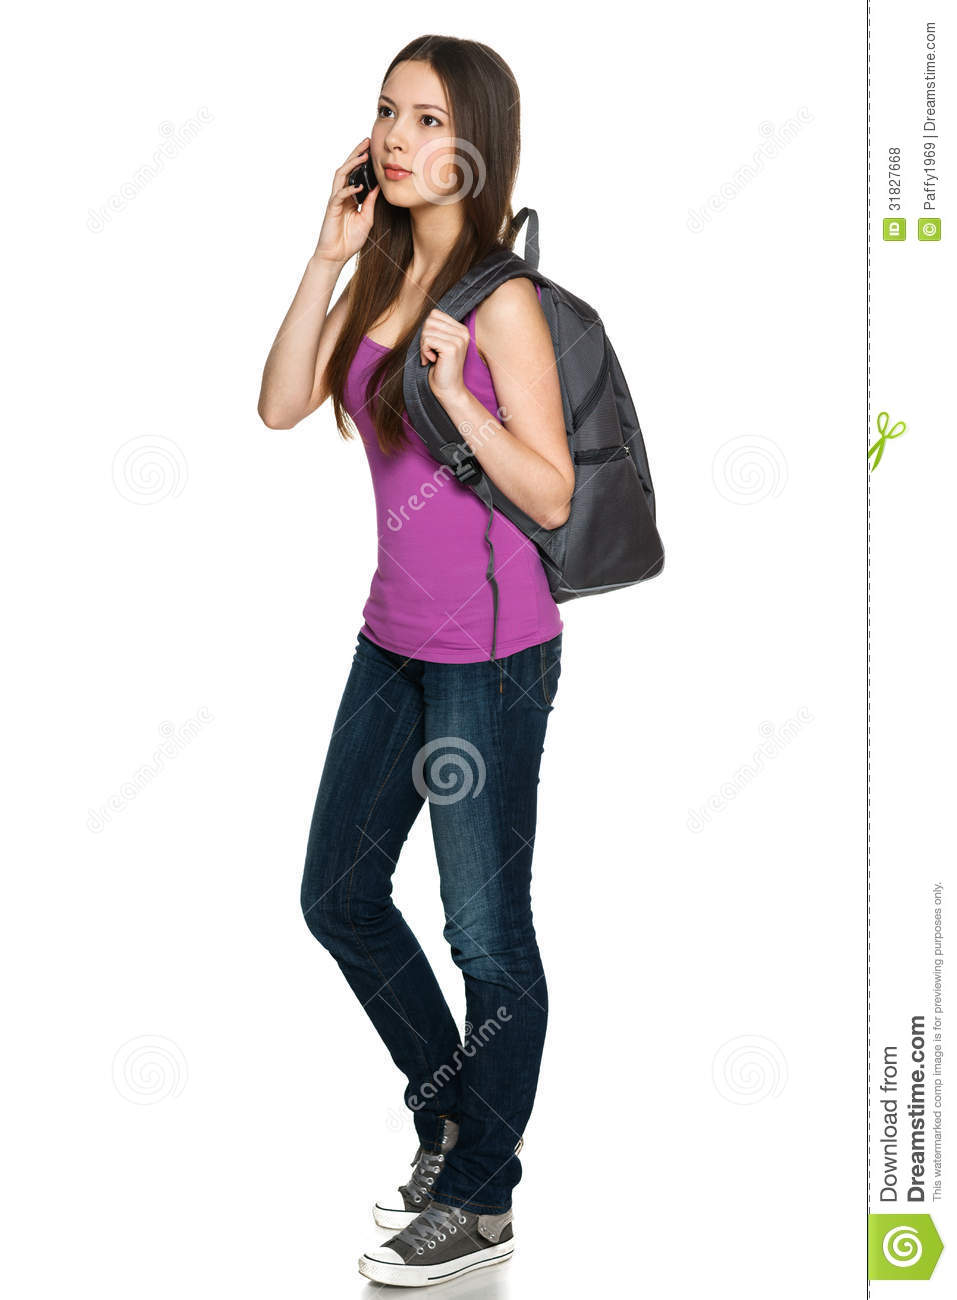 ... cell-phone-full-legnth-young-female-cellphone-looking-away-against